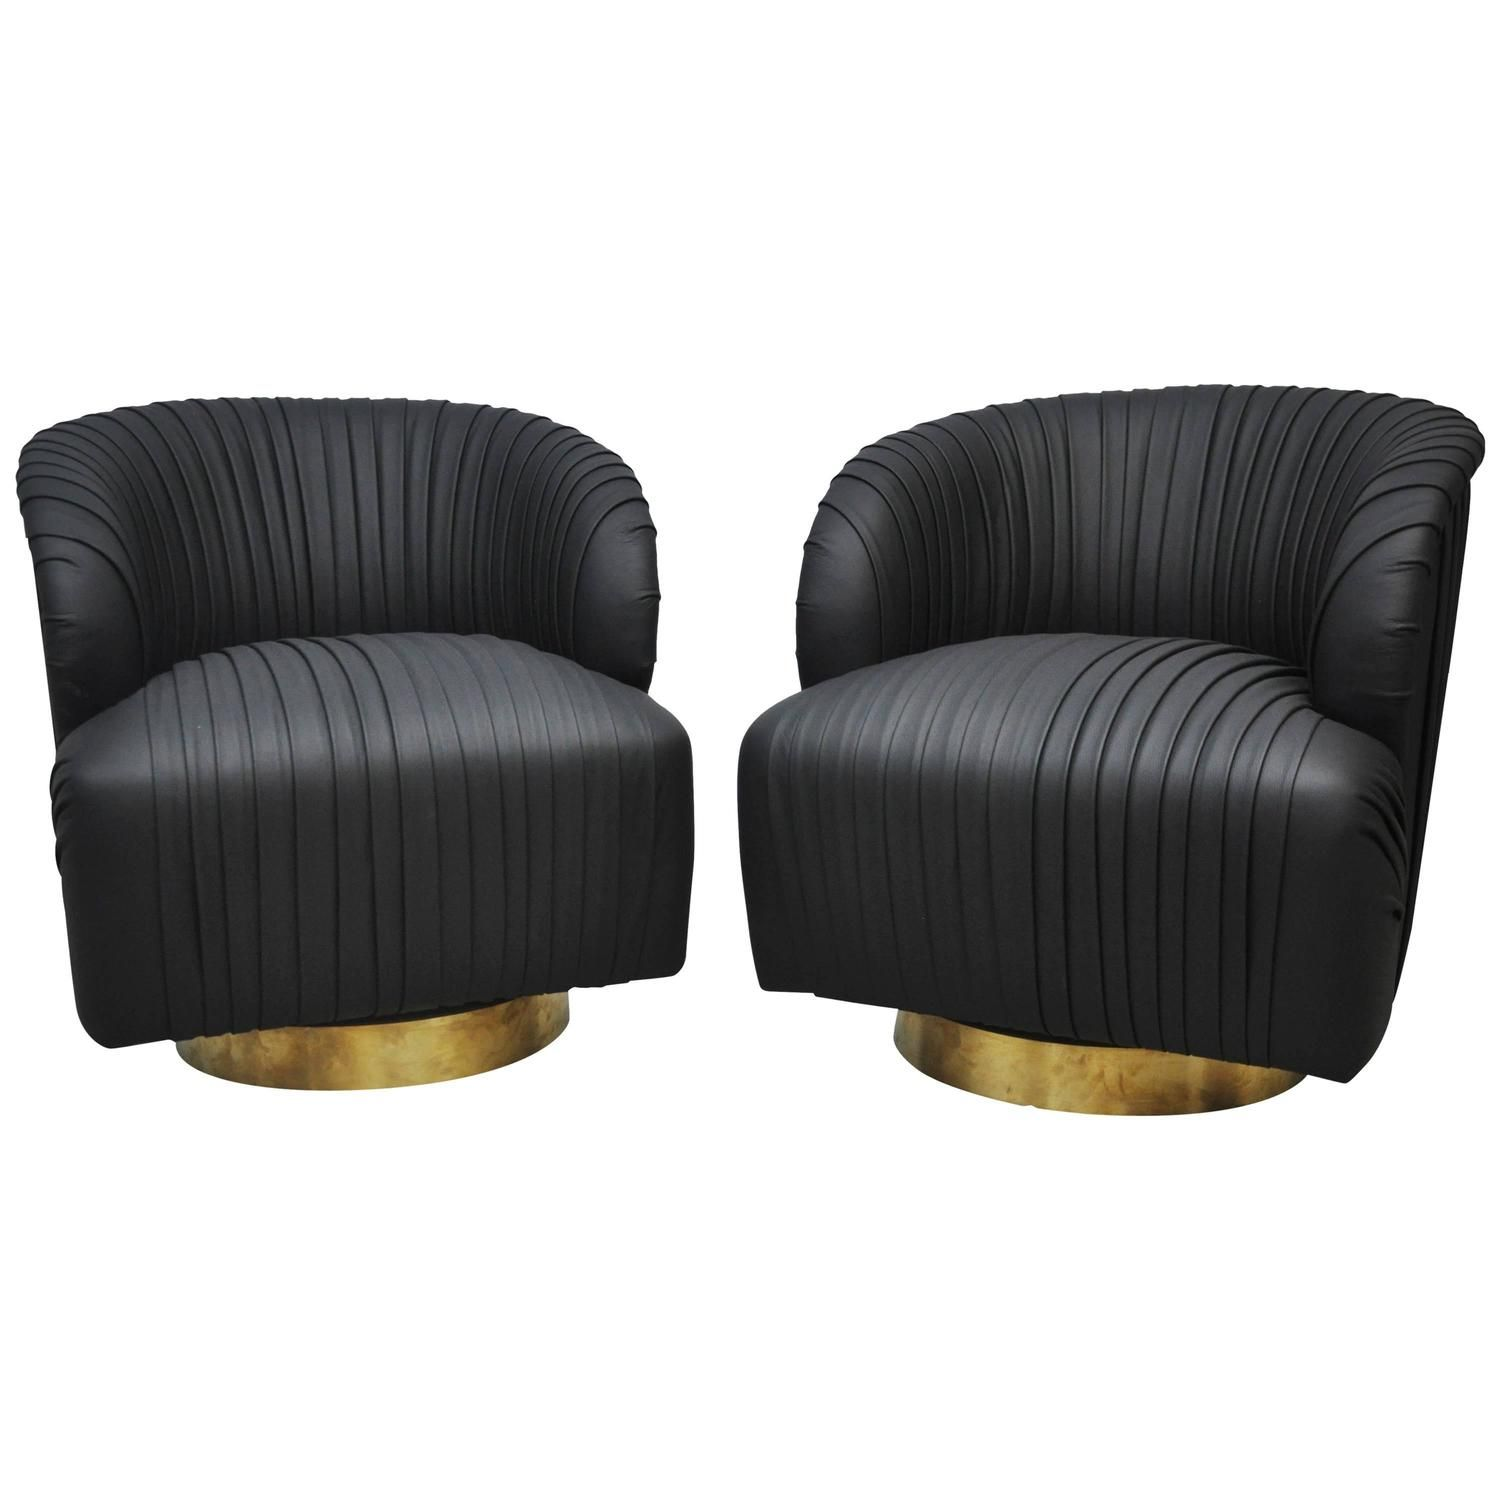 Enjoyable Pleated Leather And Brass Swivel Chairs Furniture Swivel Forskolin Free Trial Chair Design Images Forskolin Free Trialorg